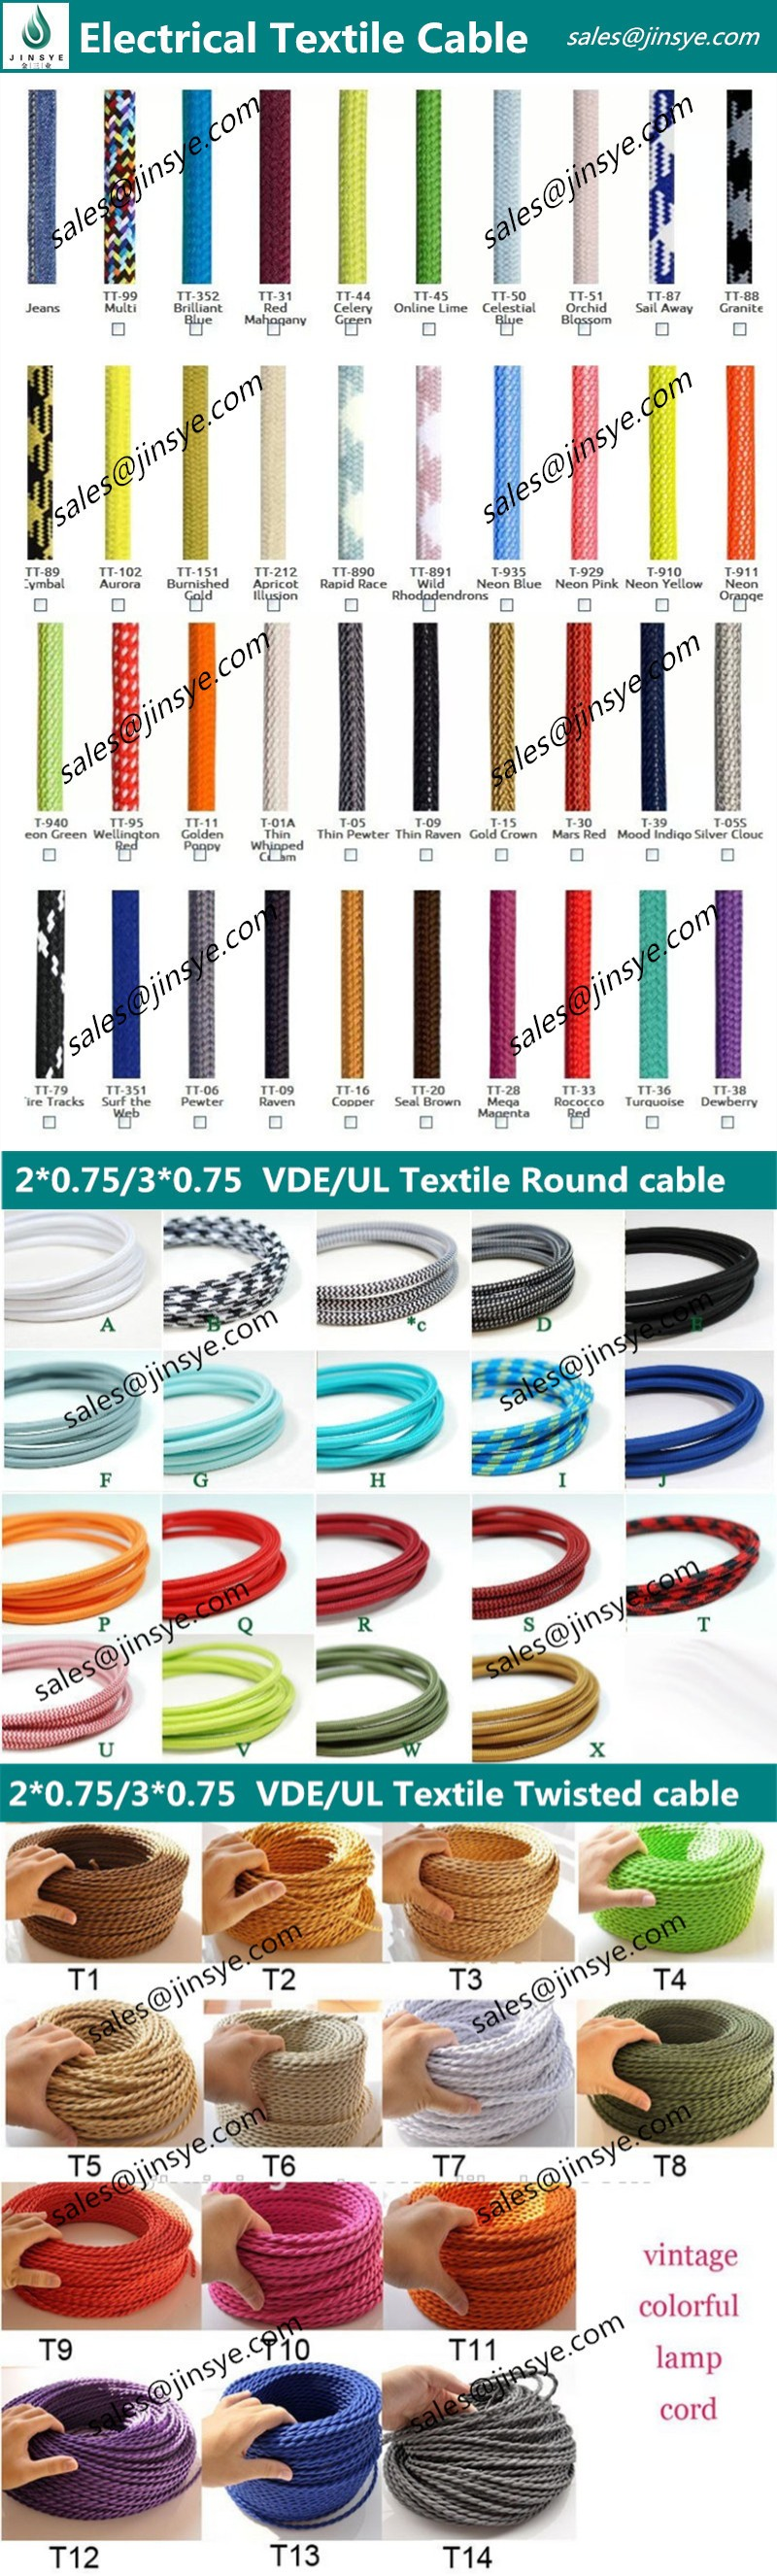 VDE/UL Certificated braided wire textile cable cotton cord copper electric fabric wire electrical cable